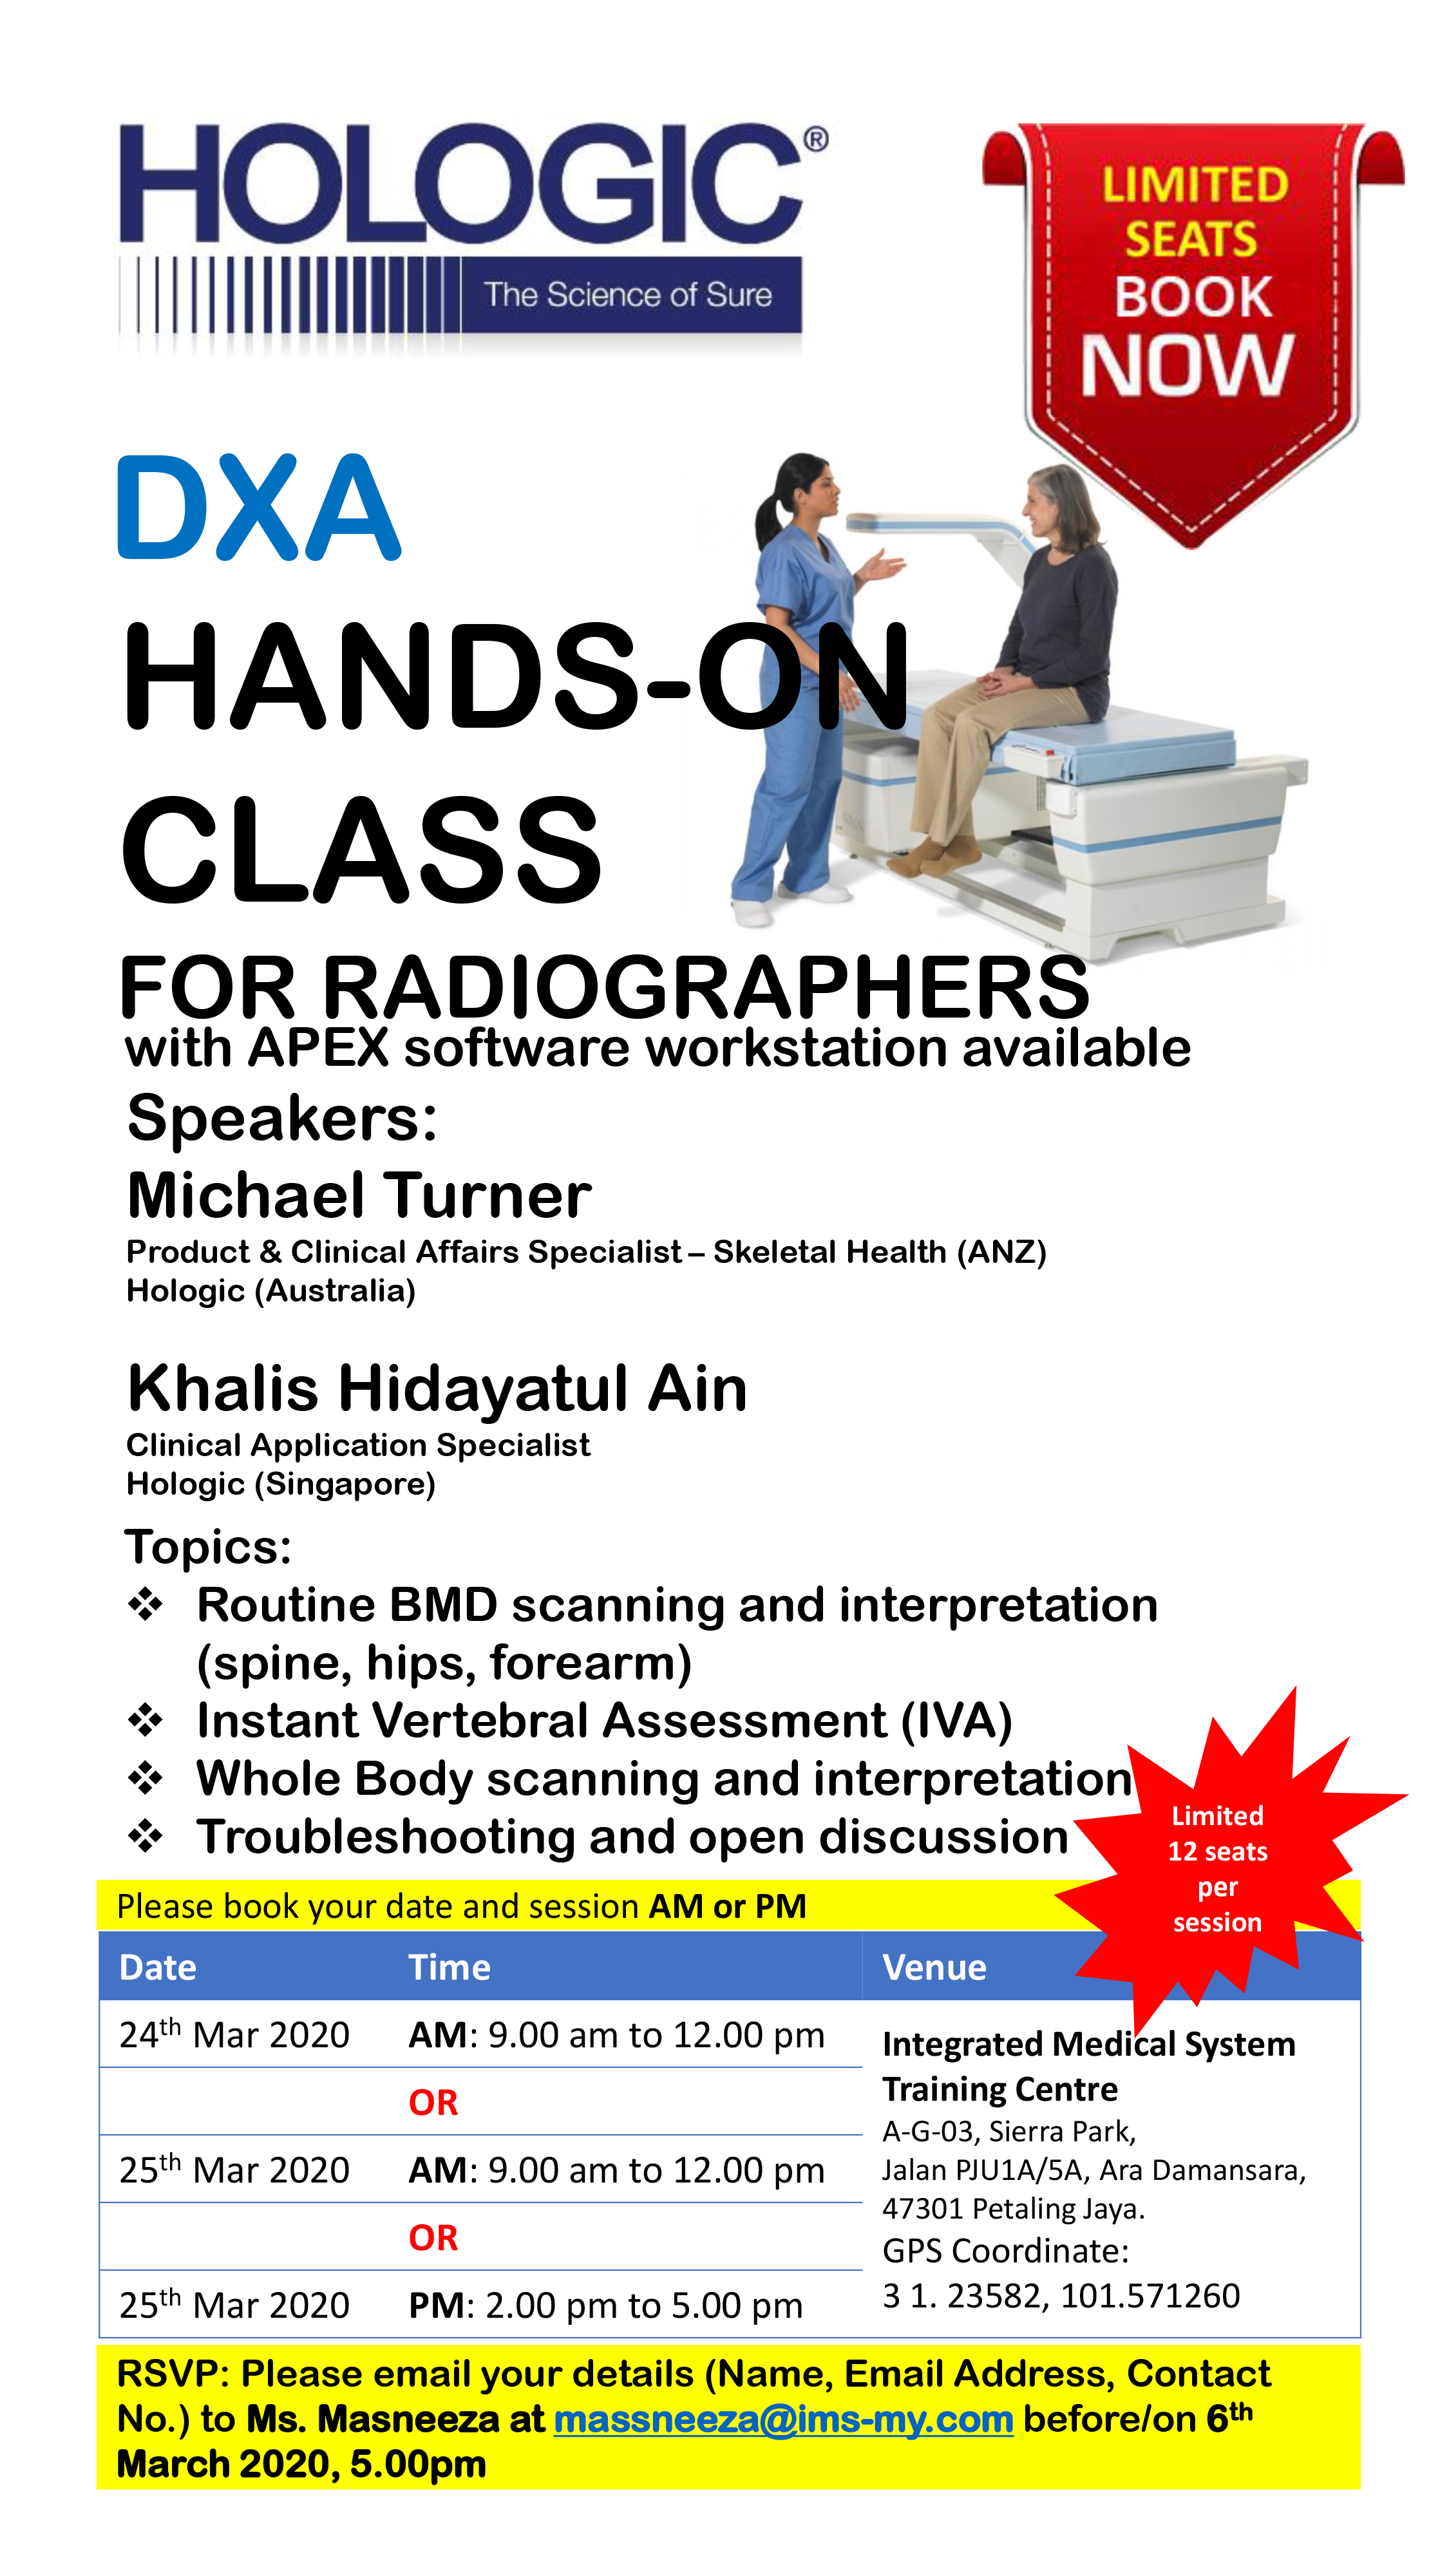 DXA HANDS-ON CLASS FOR RADIOGRAPHERS